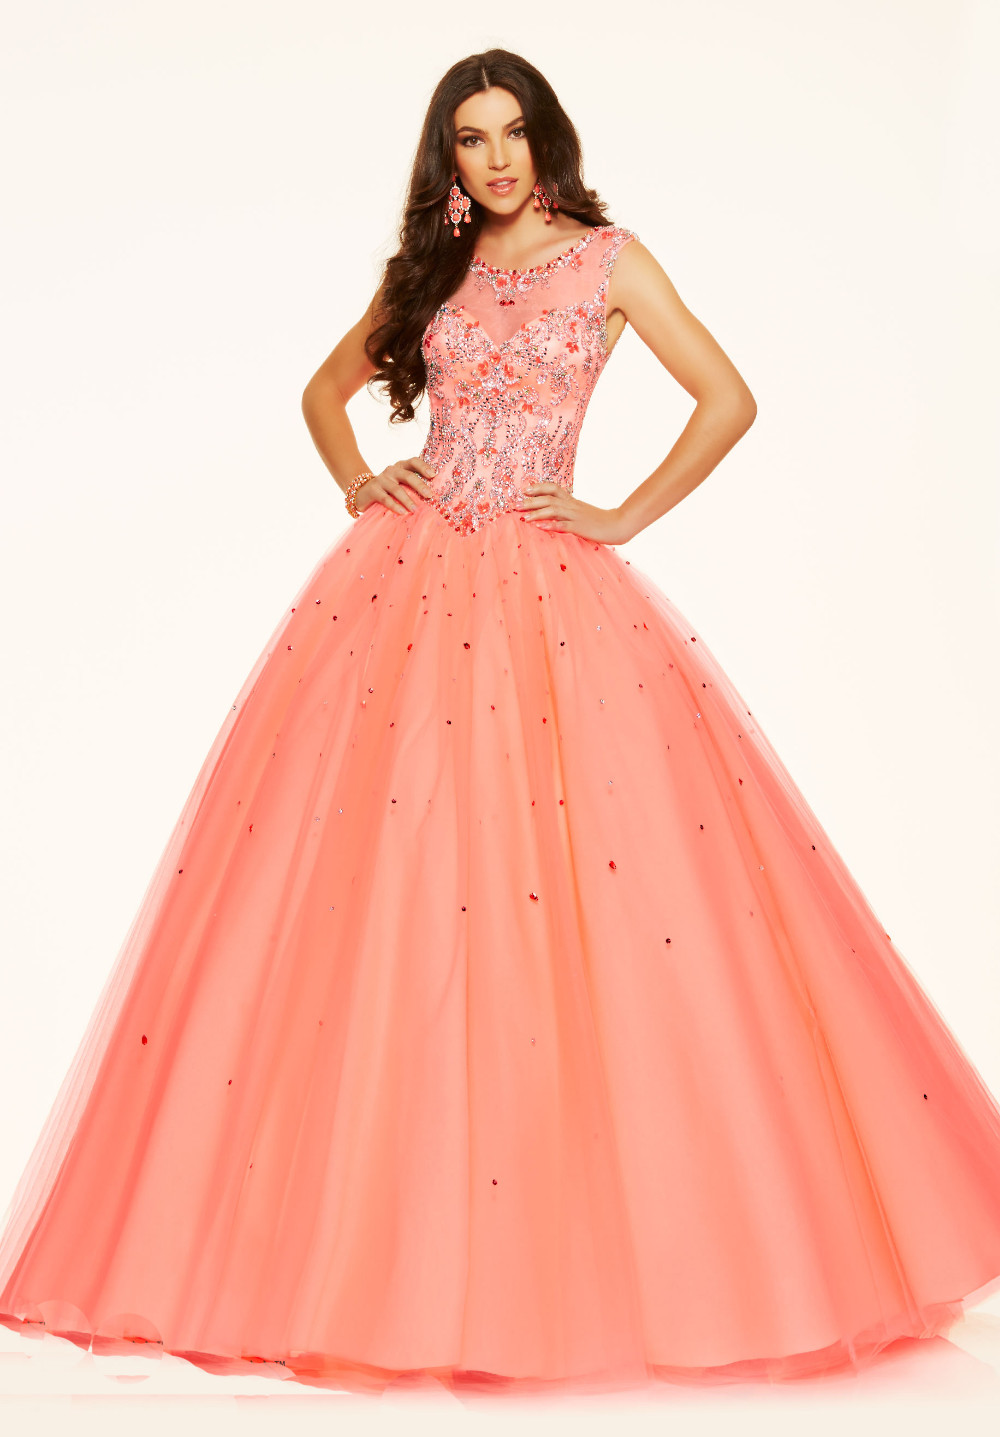 Beautiful Puffy Ball Gown Princess Peach Prom Dresses With Corset ...